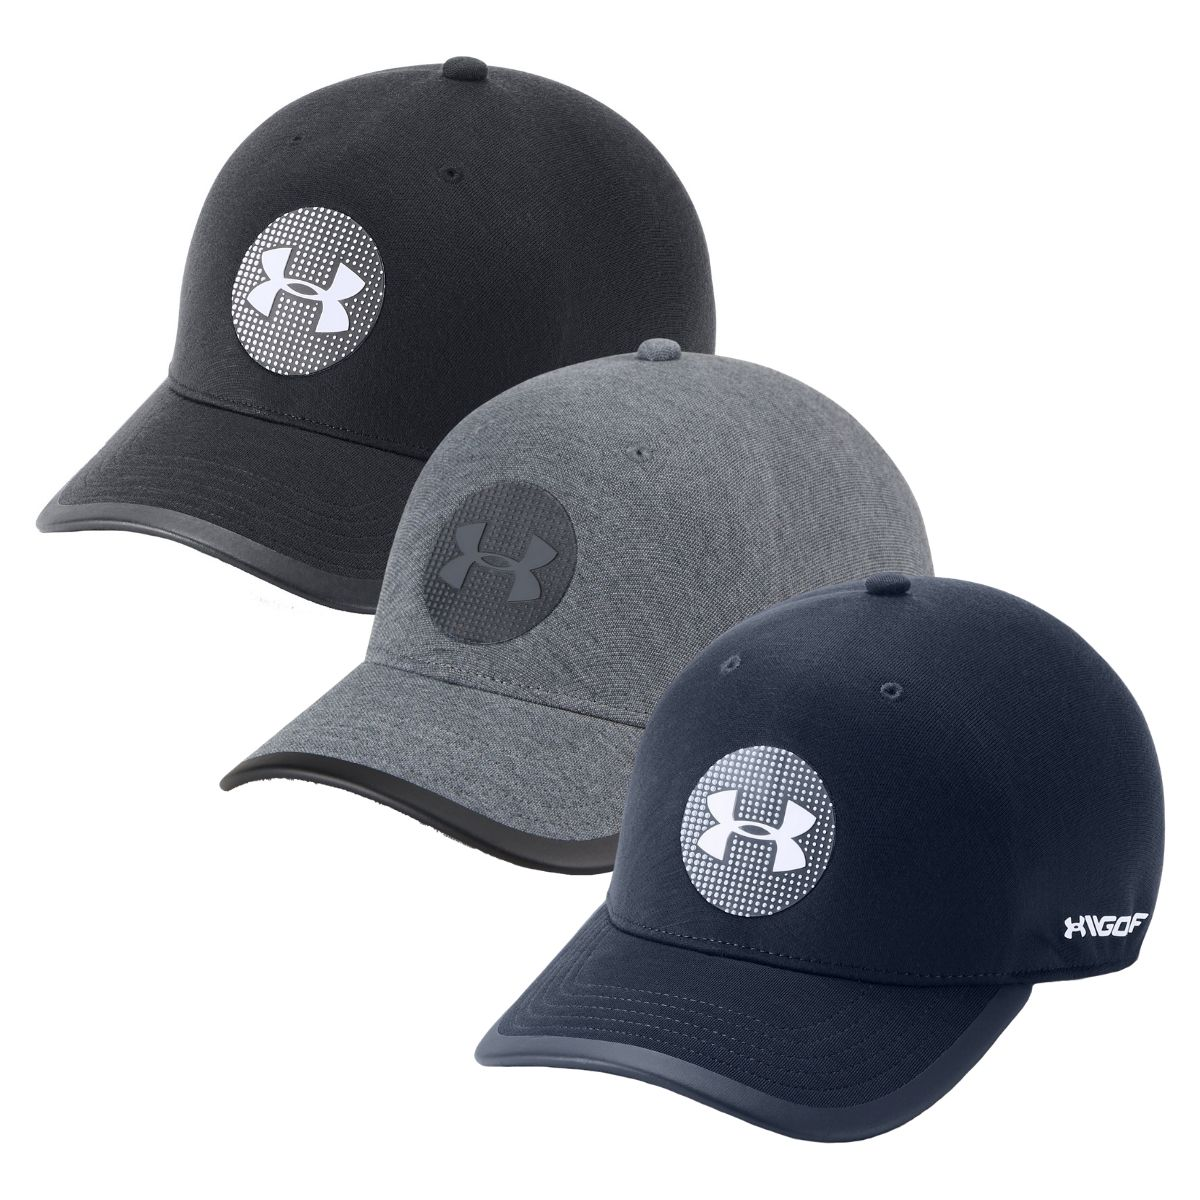 Under Armour Men's Jordan Spieth Official Elevated Tour Cap